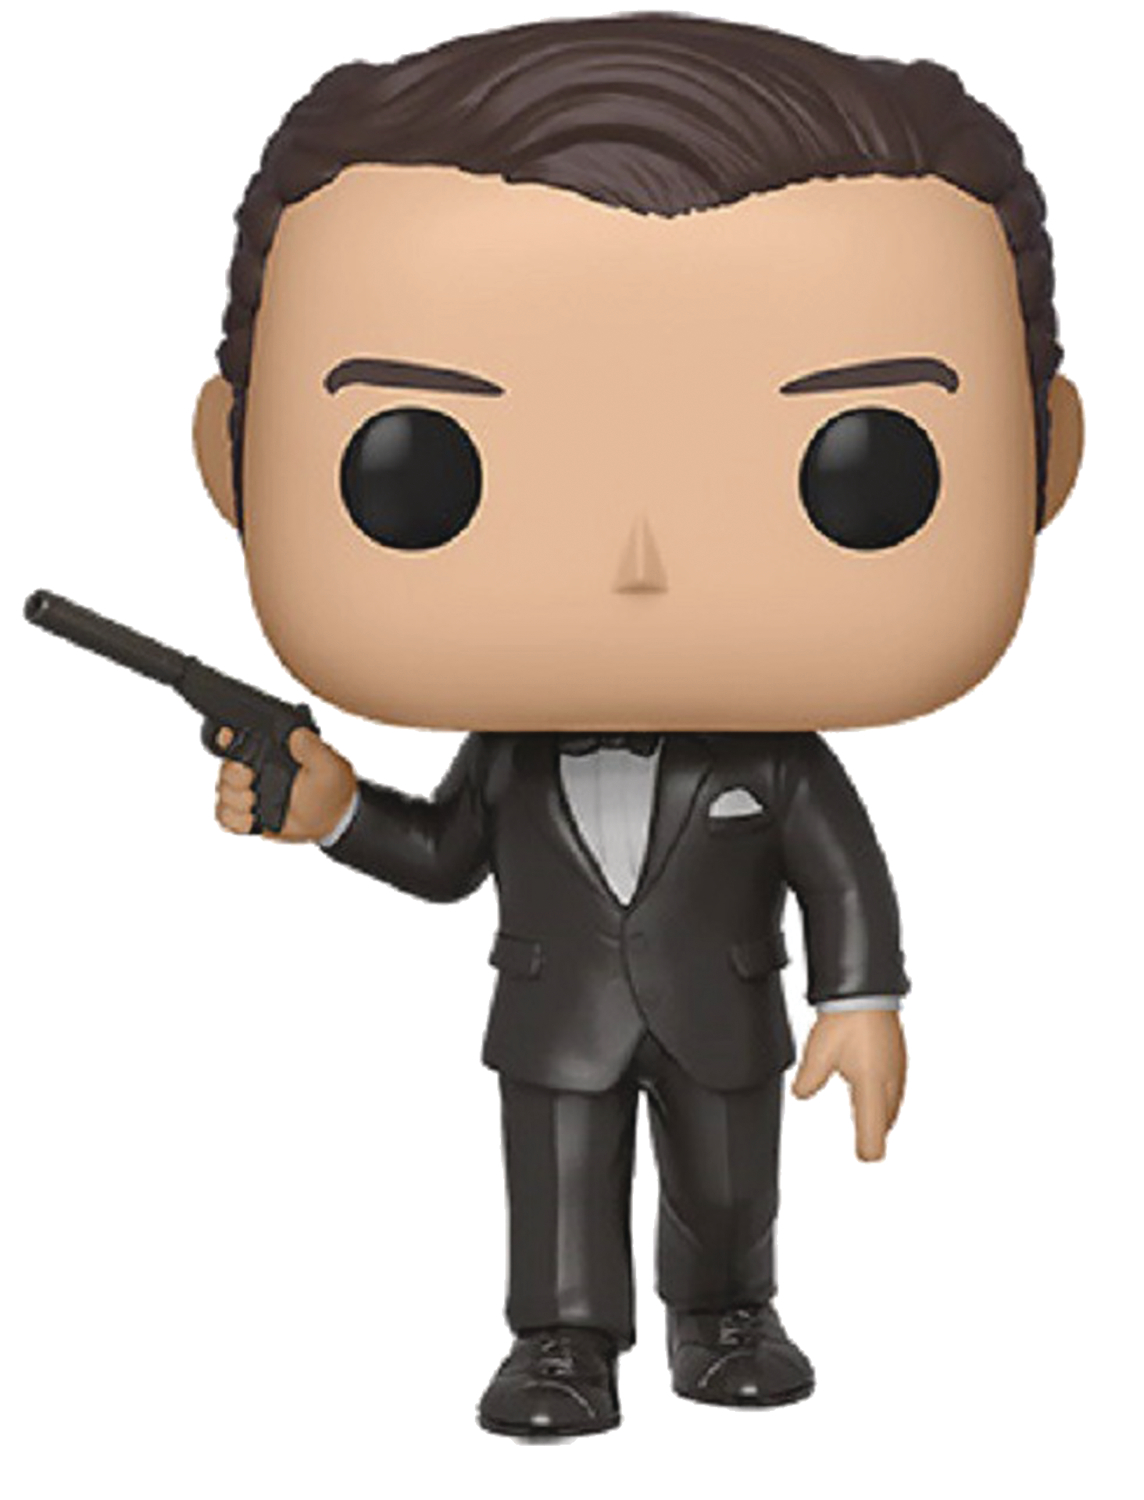 POP MOVIES JAMES BOND PIERCE BROSNAN GOLDENEYE VIN FIG